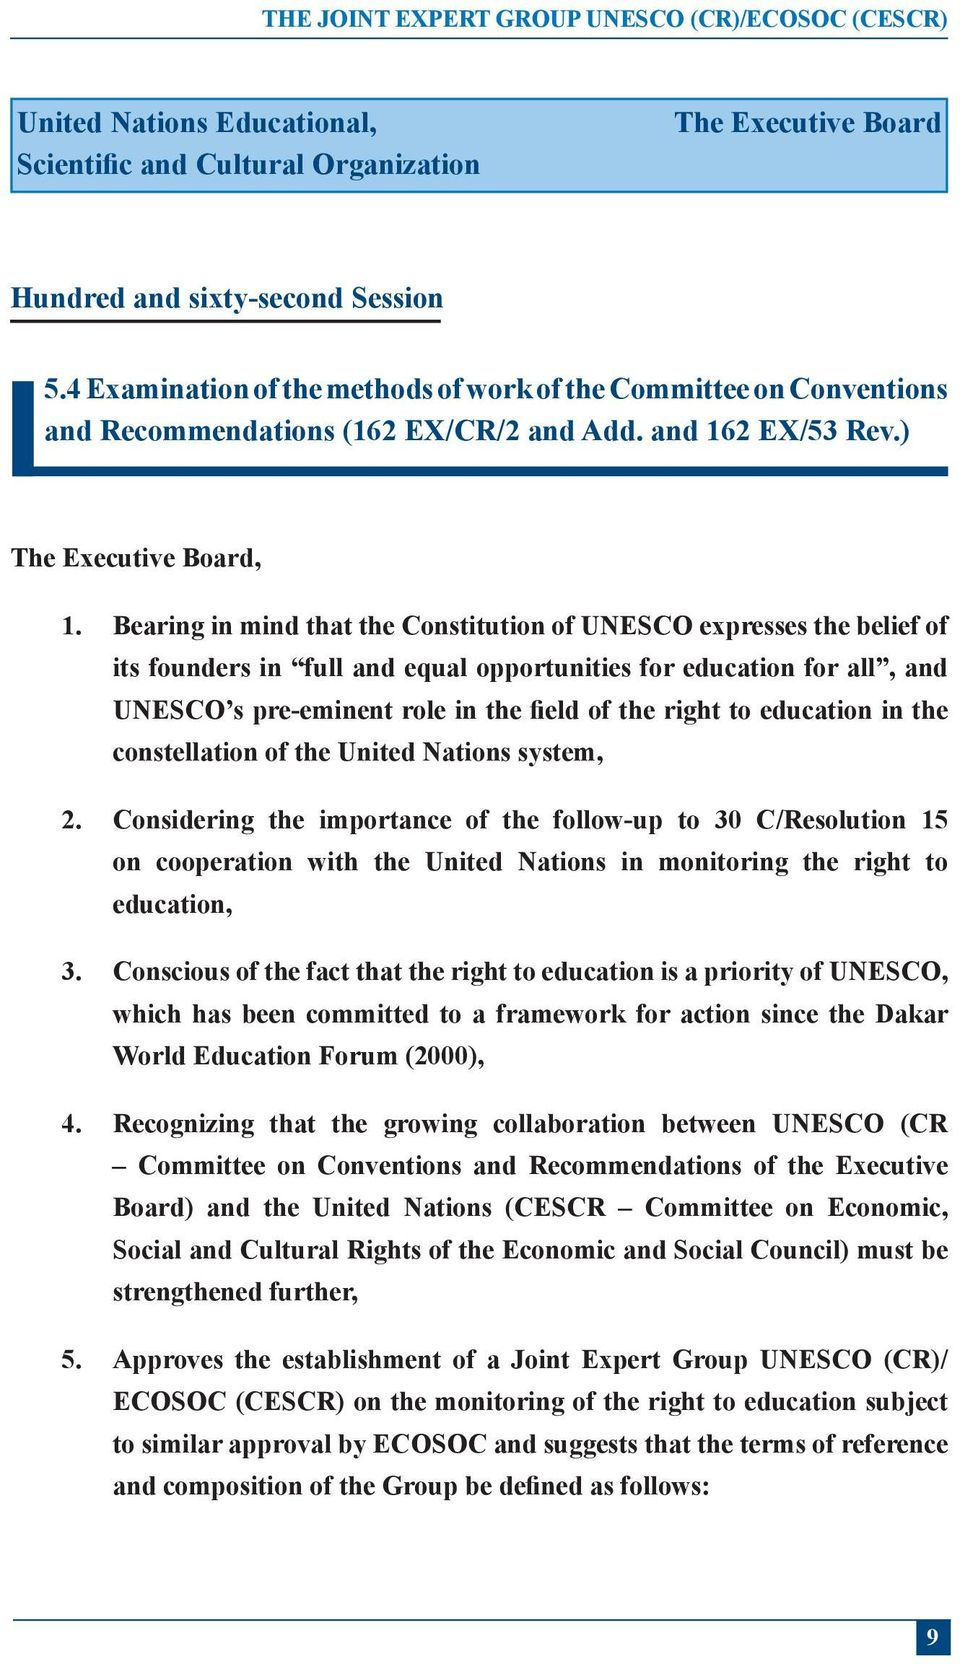 Bearing in mind that the Constitution of UNESCO expresses the belief of its founders in full and equal opportunities for education for all, and UNESCO s pre-eminent role in the field of the right to